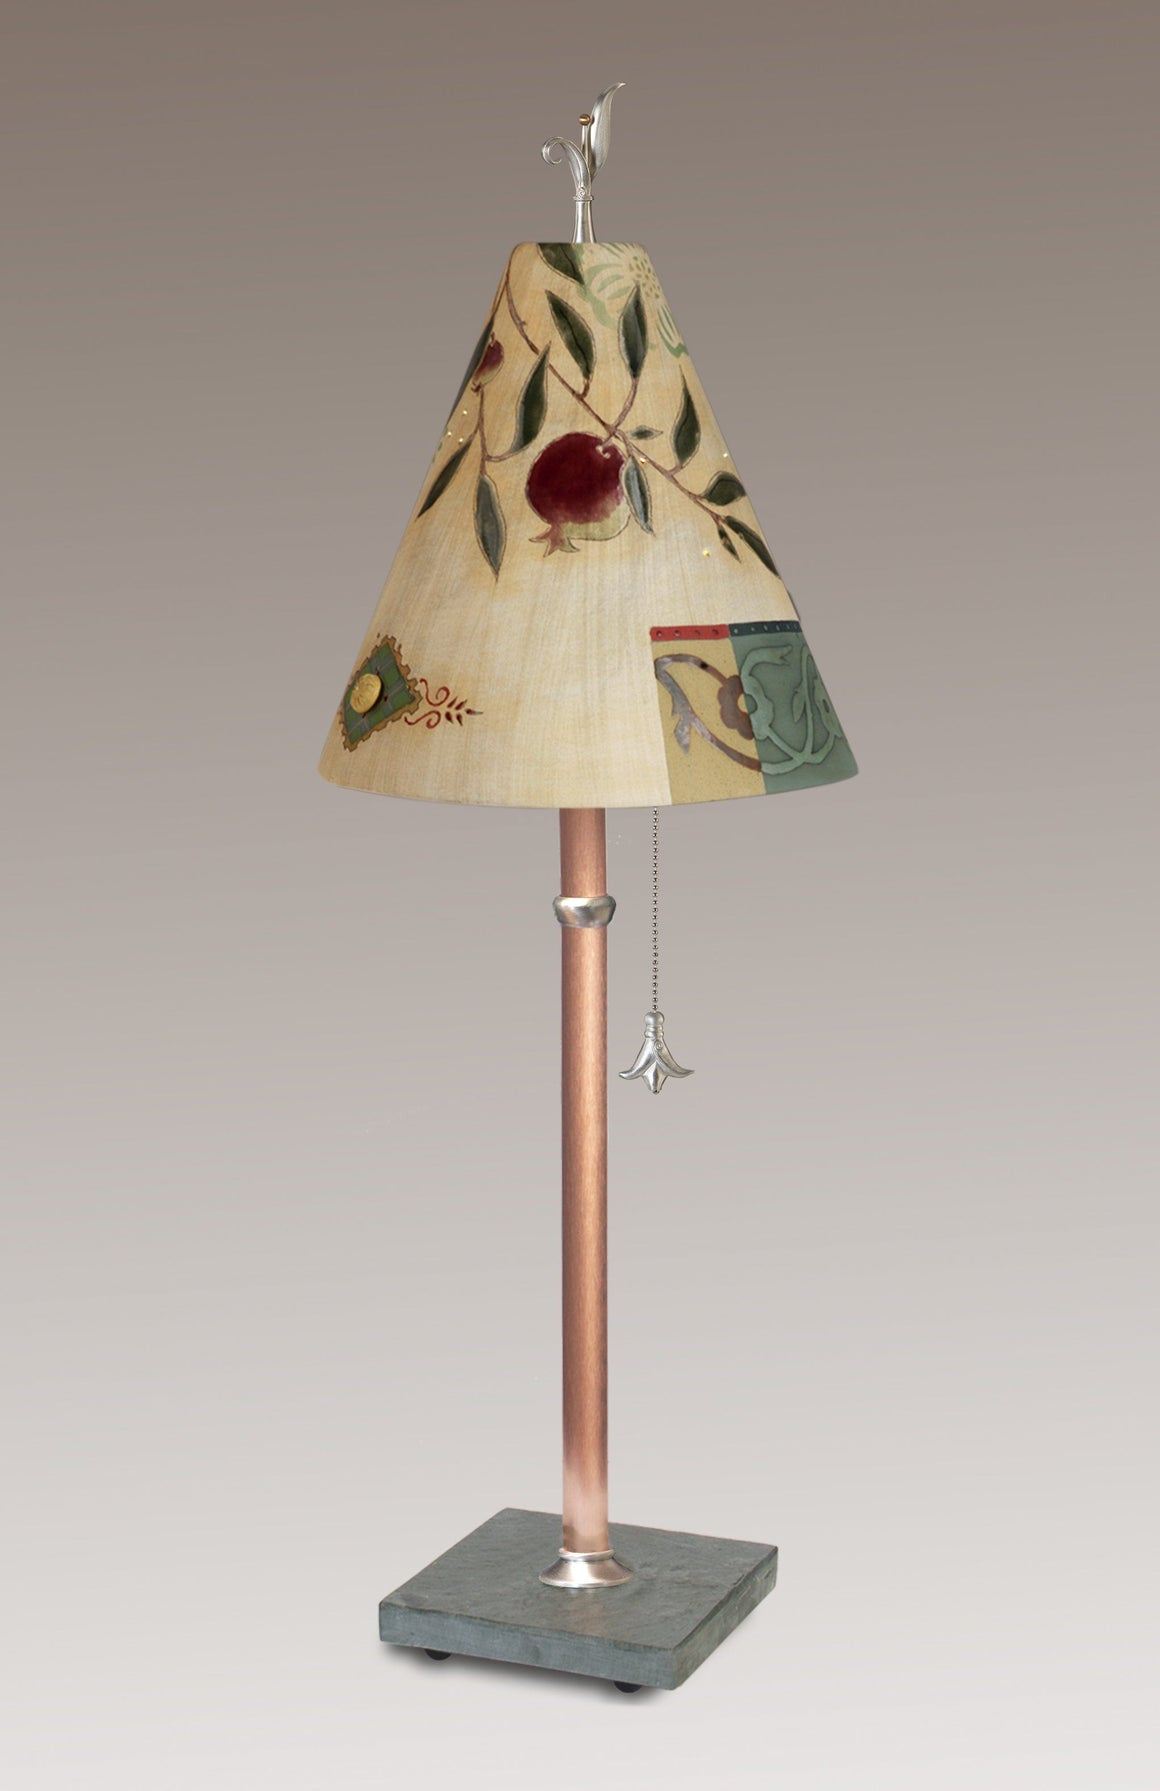 Copper Table Lamp with Small Conical Ceramic Shade in Pomegranate Ribbon